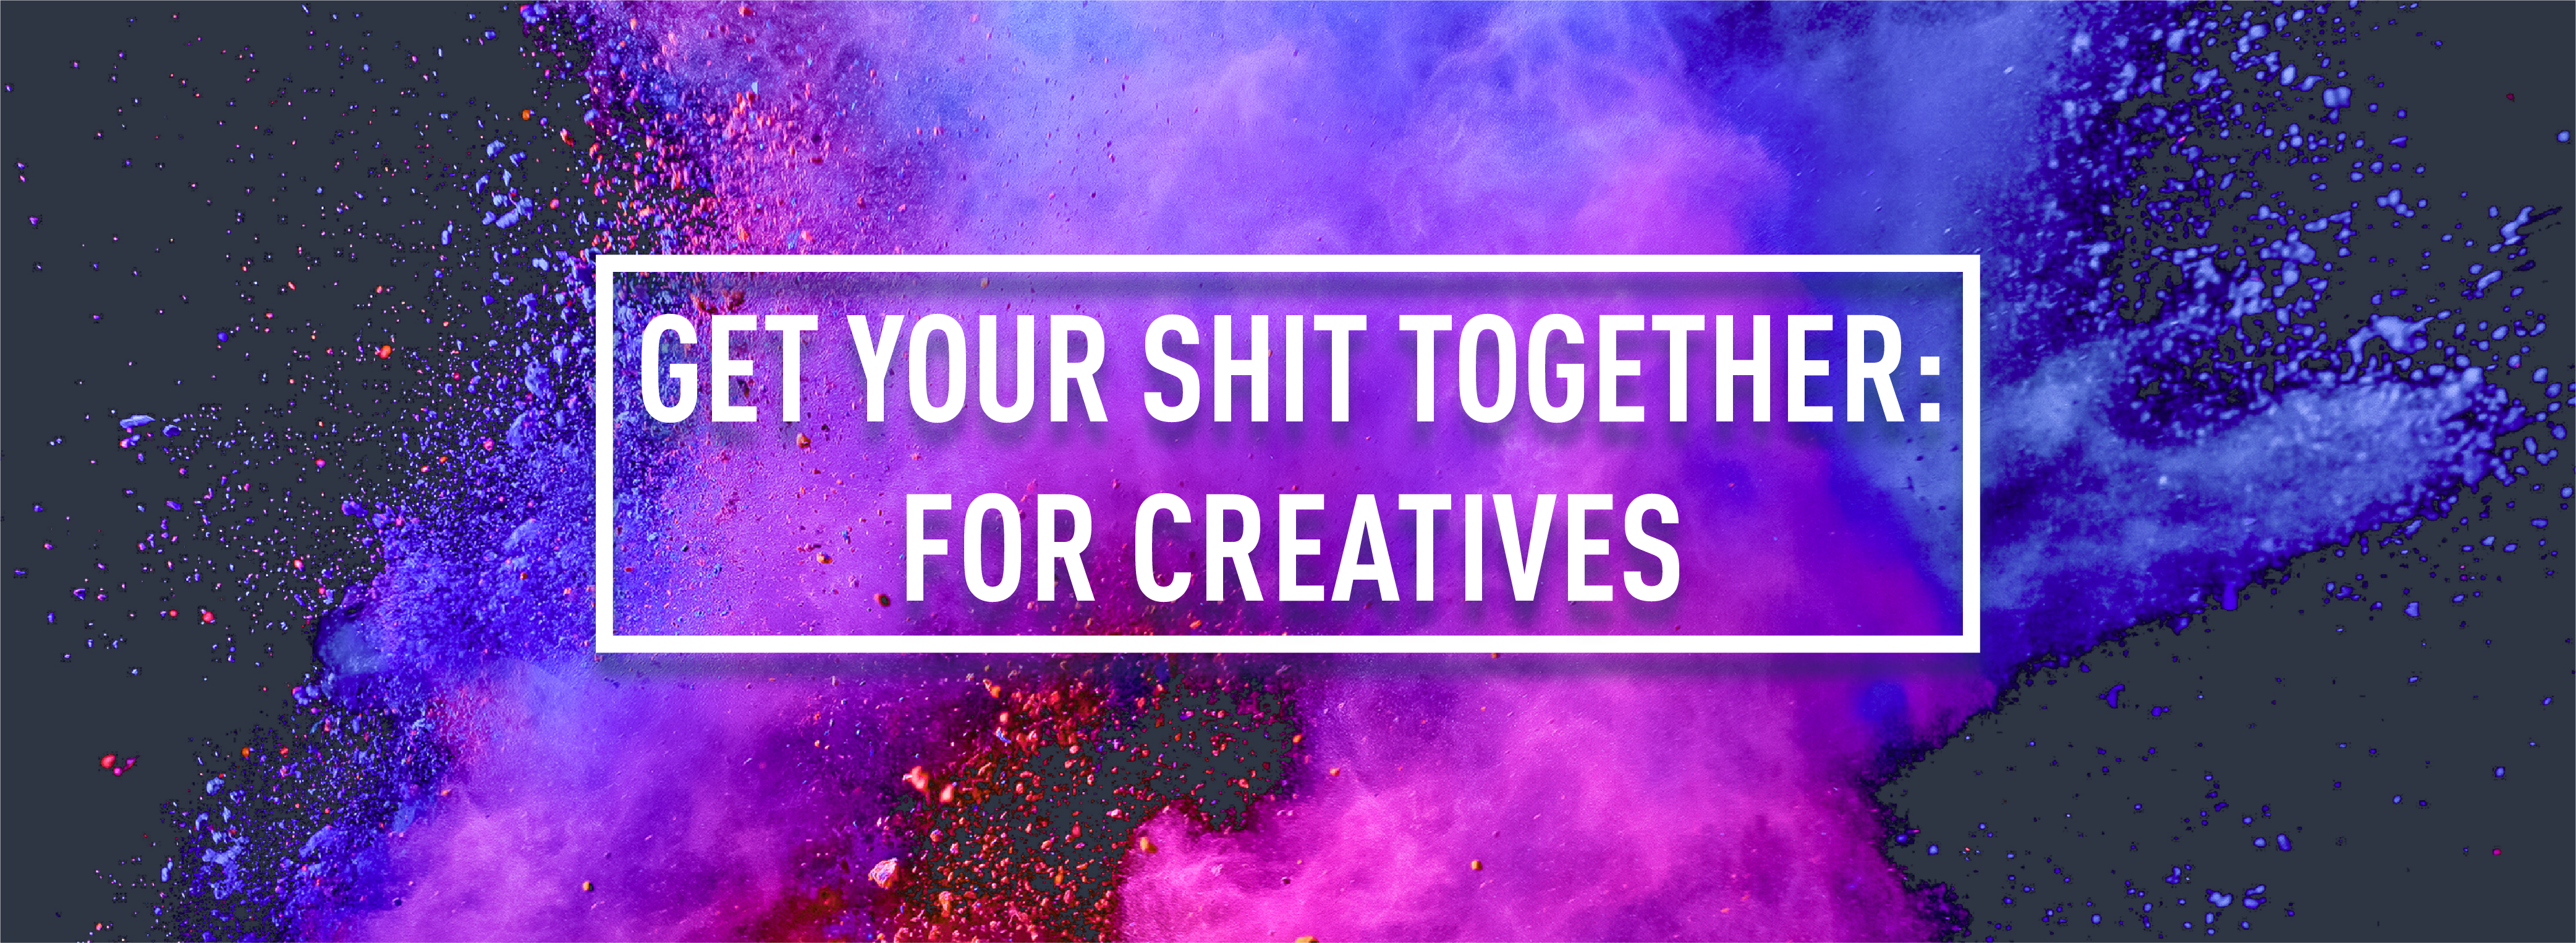 GYST FOR CREATIVES_Webpage Header